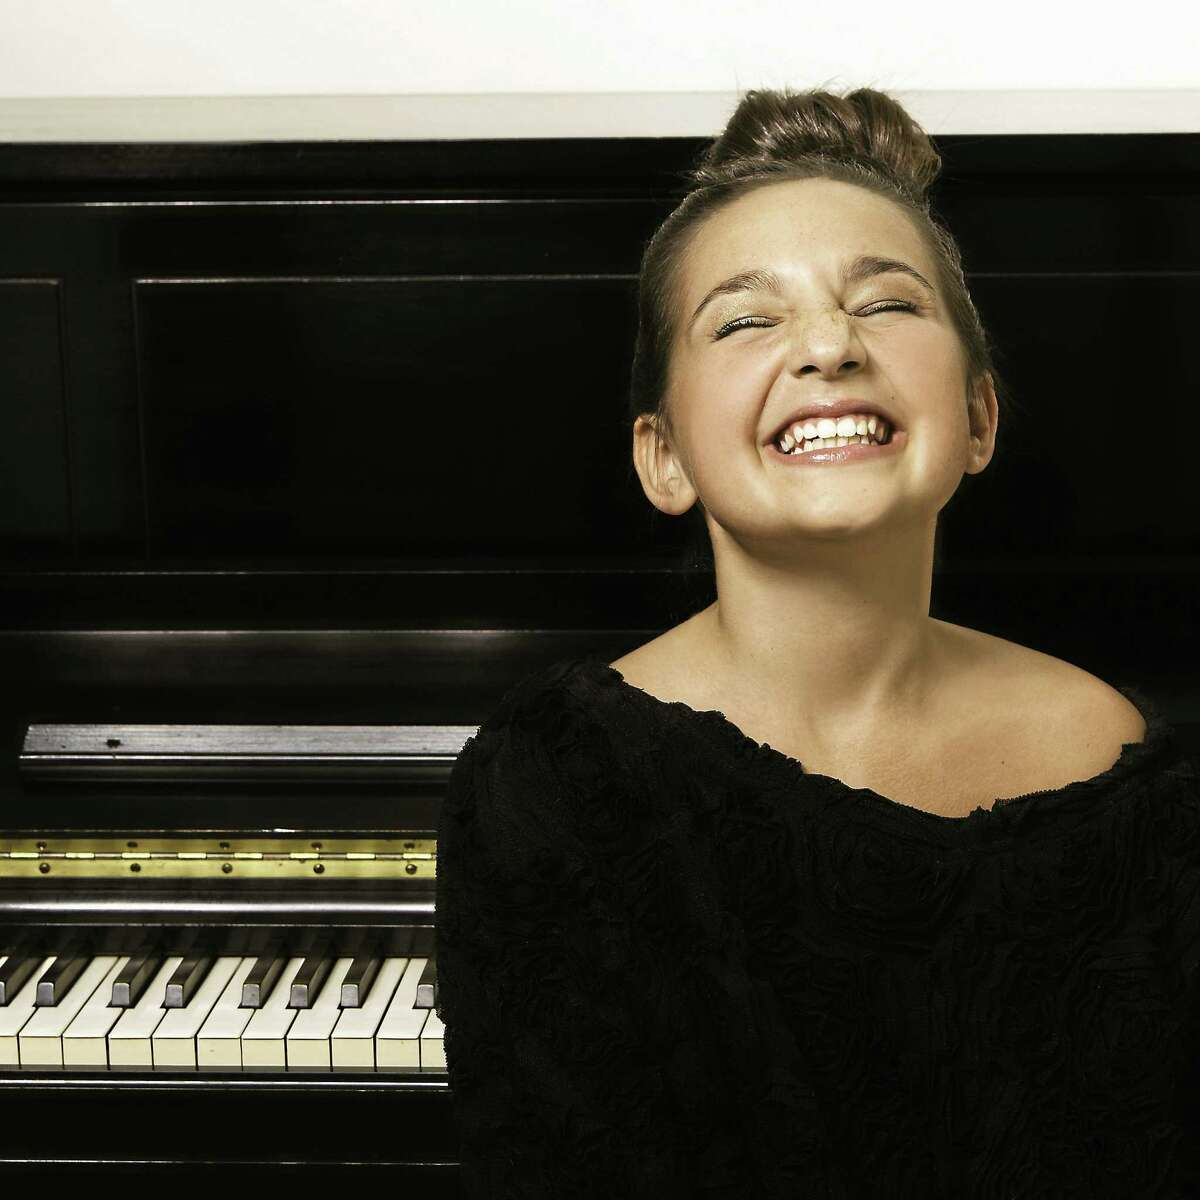 Submitted photo Emily Bear is a classical and jazz pianist. At 12, she is what many call a prodigy. She'll perform with her quartet in Clinton Sunday, Aug. 17 at town hall.